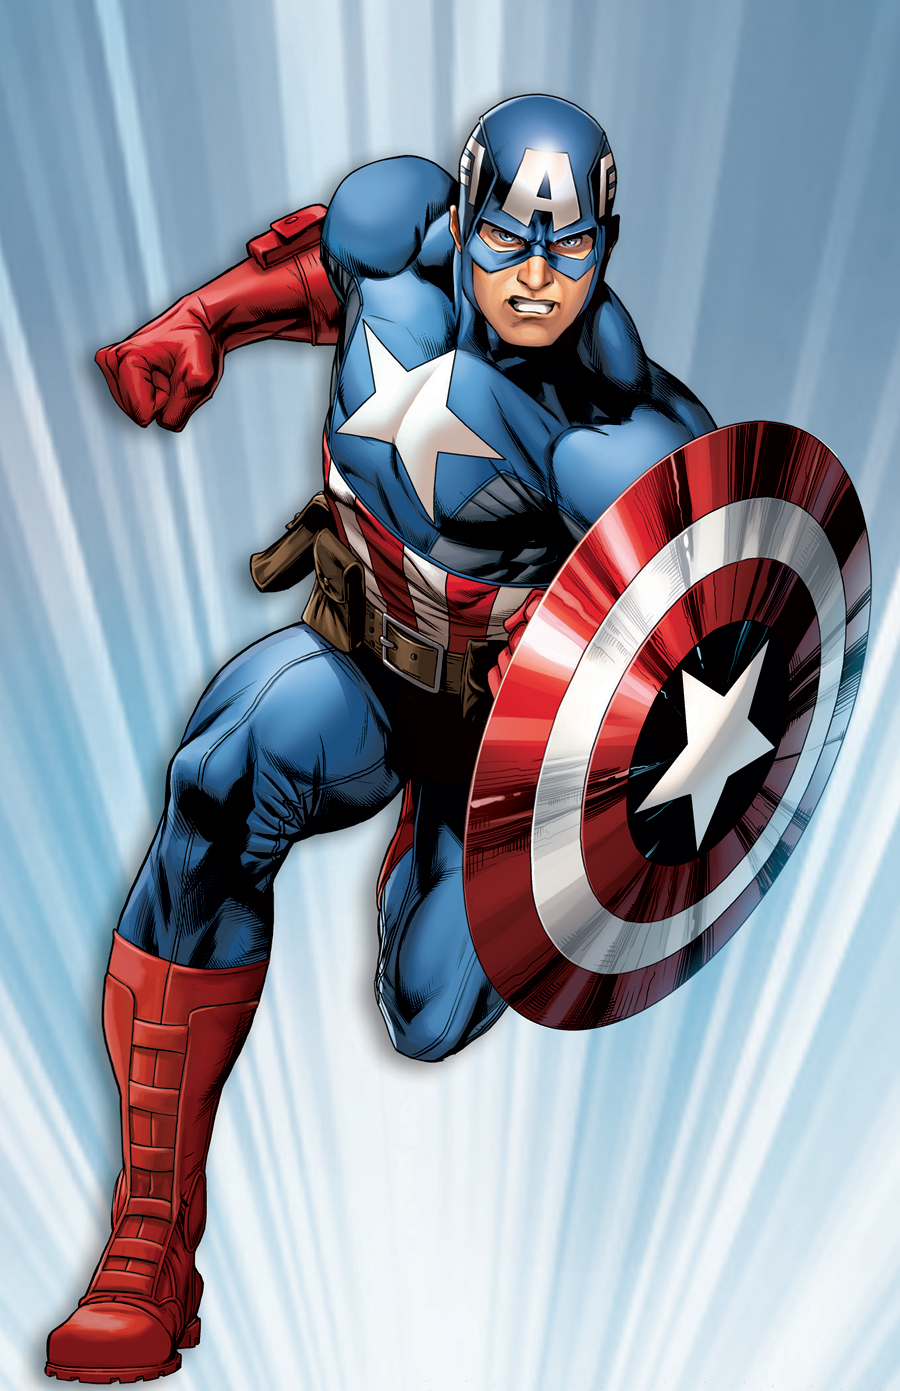 Captain America Super Hero 1000.86 Kb